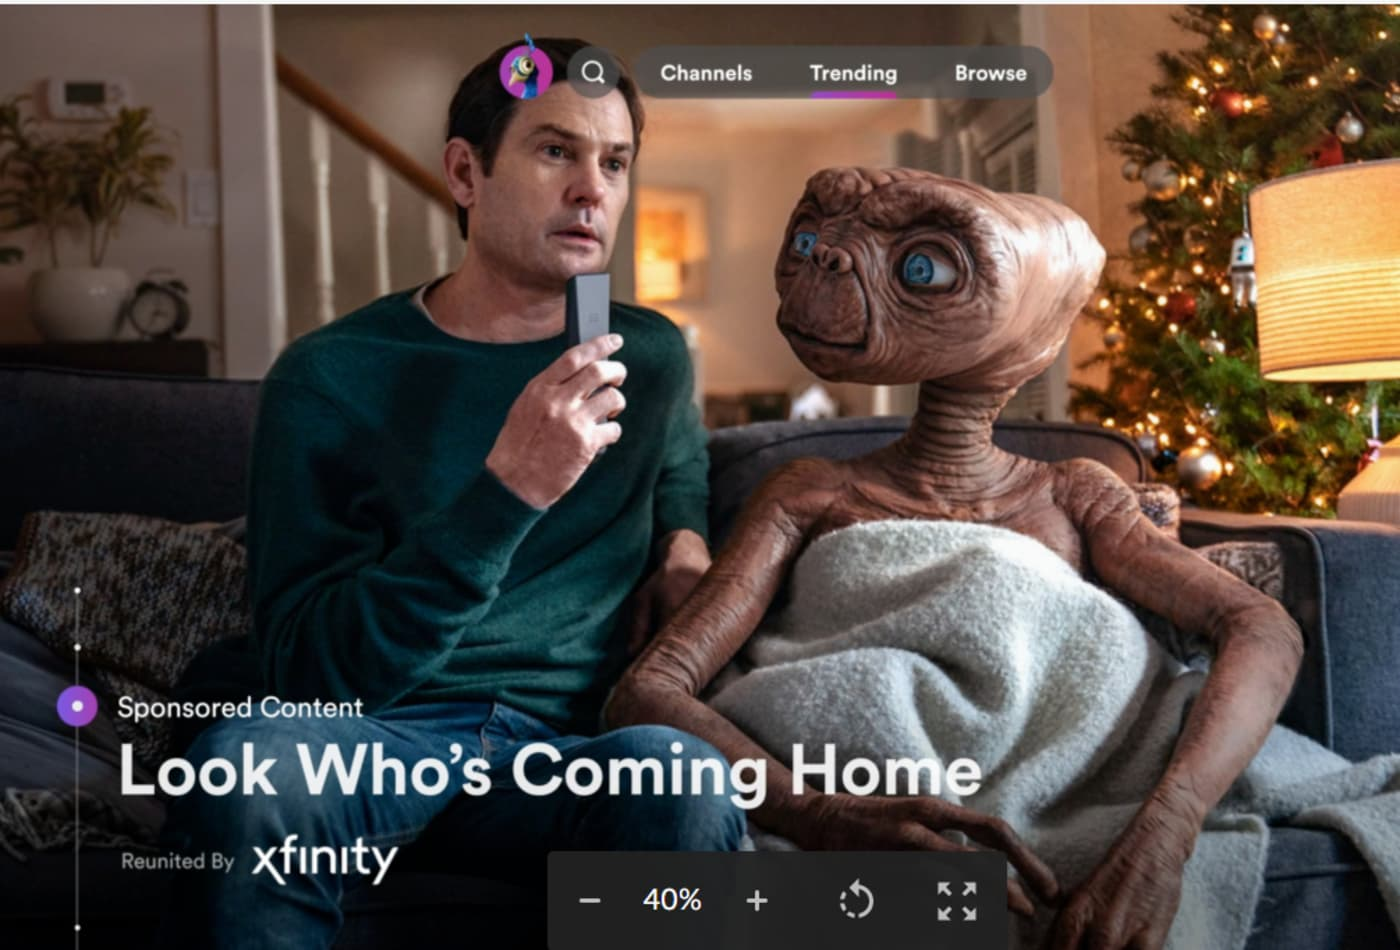 NBCU's Peacock will have no more than five minutes of ads per hour, even on the free version